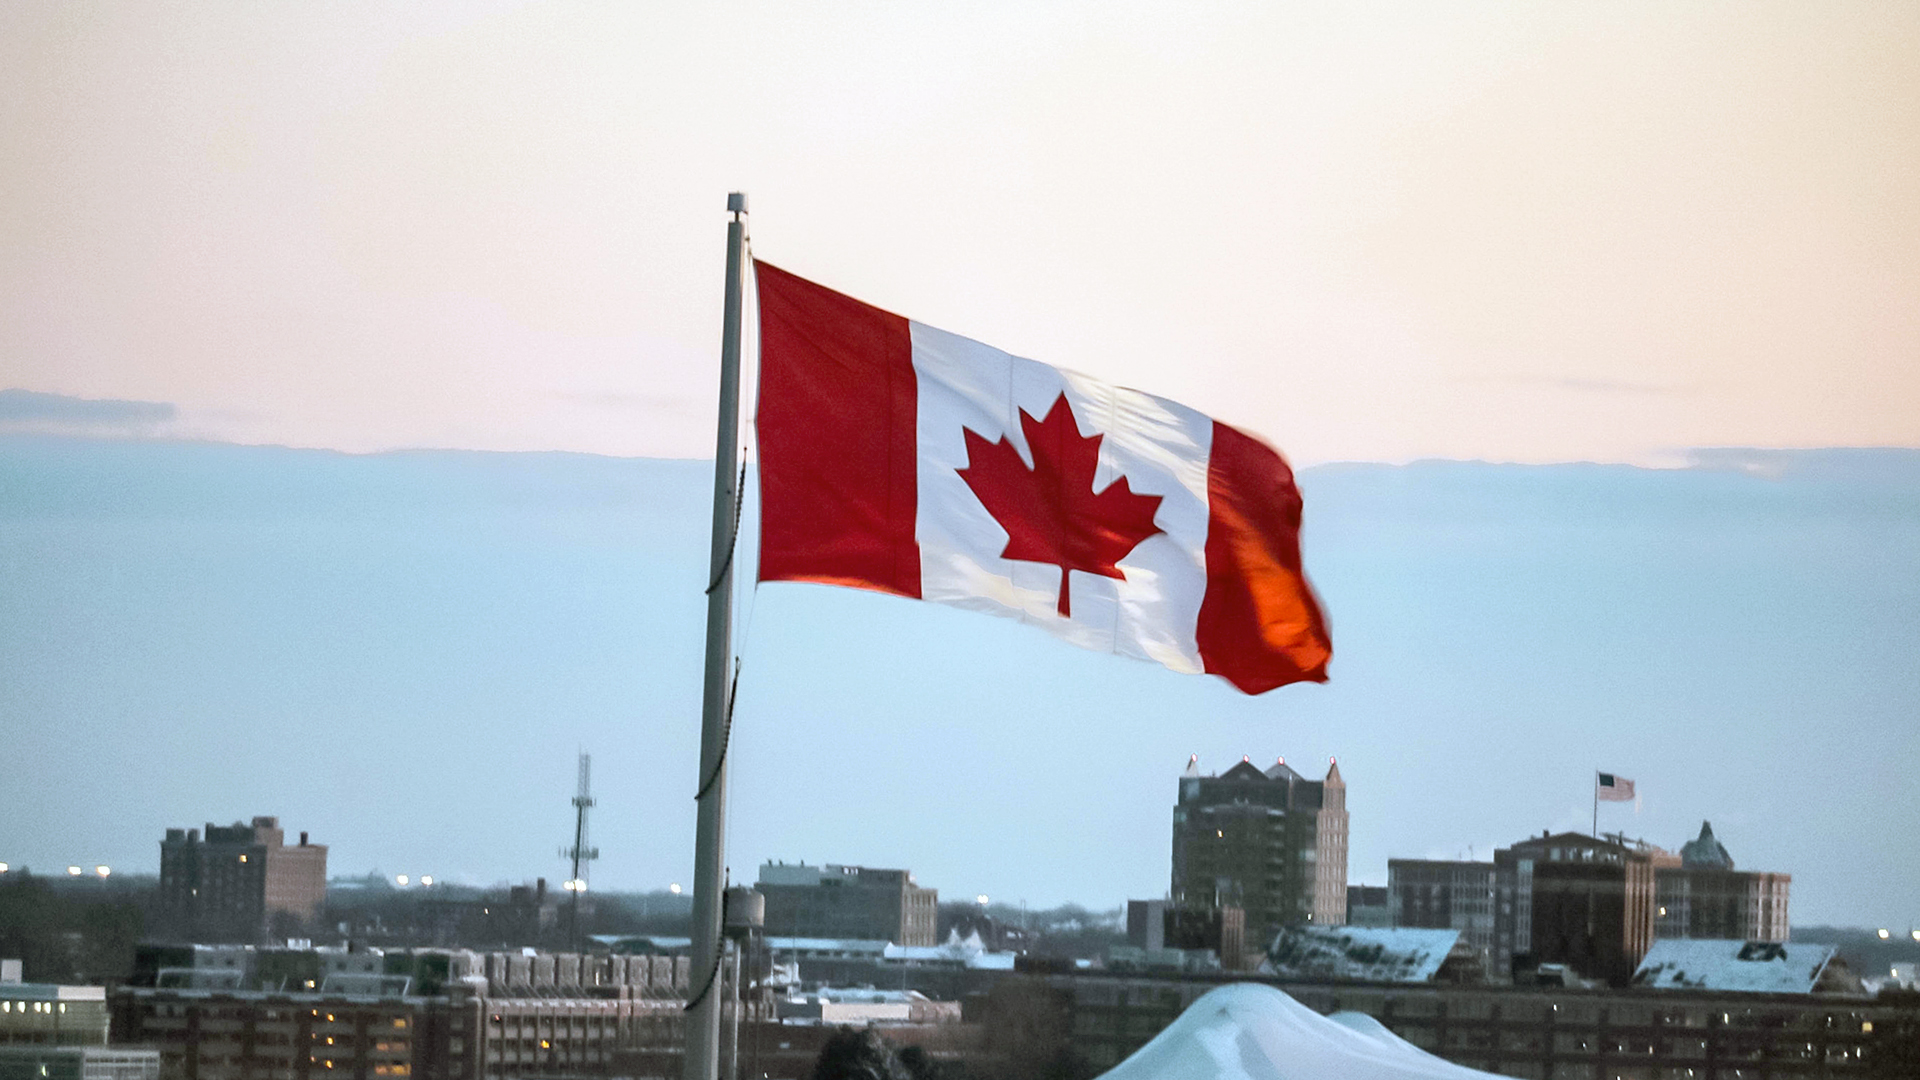 A Canadian flag flying atop city buildings